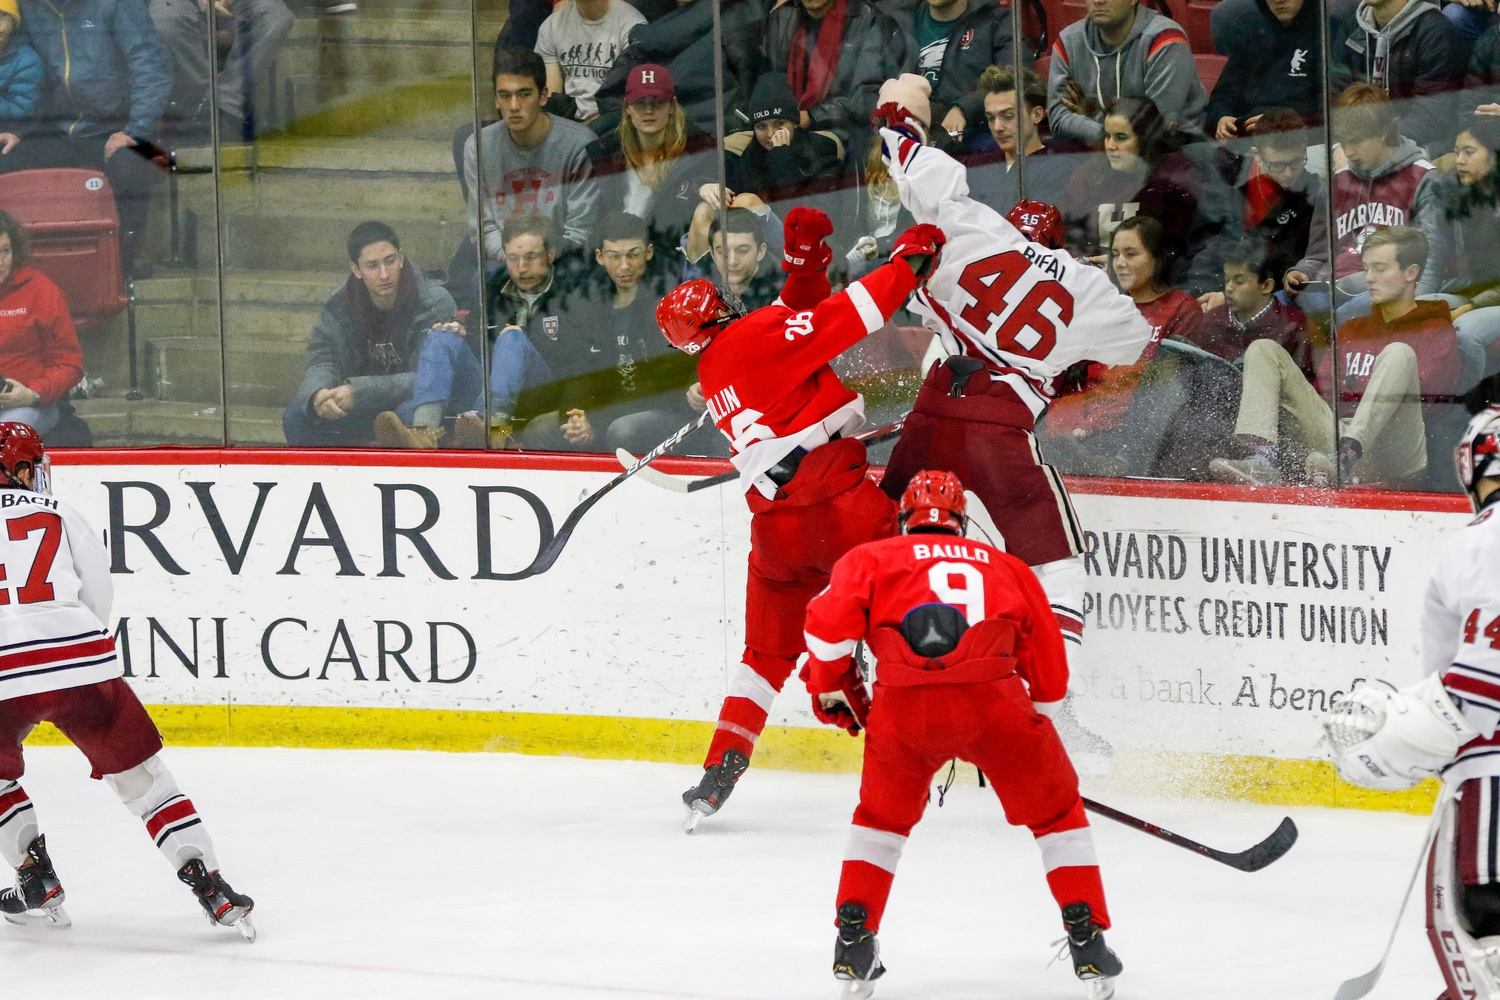 In Harvard's first meeting of the campaign with Cornell, the Big Red put forth a dominant physical and high-speed effort to cement its early-season superiority.